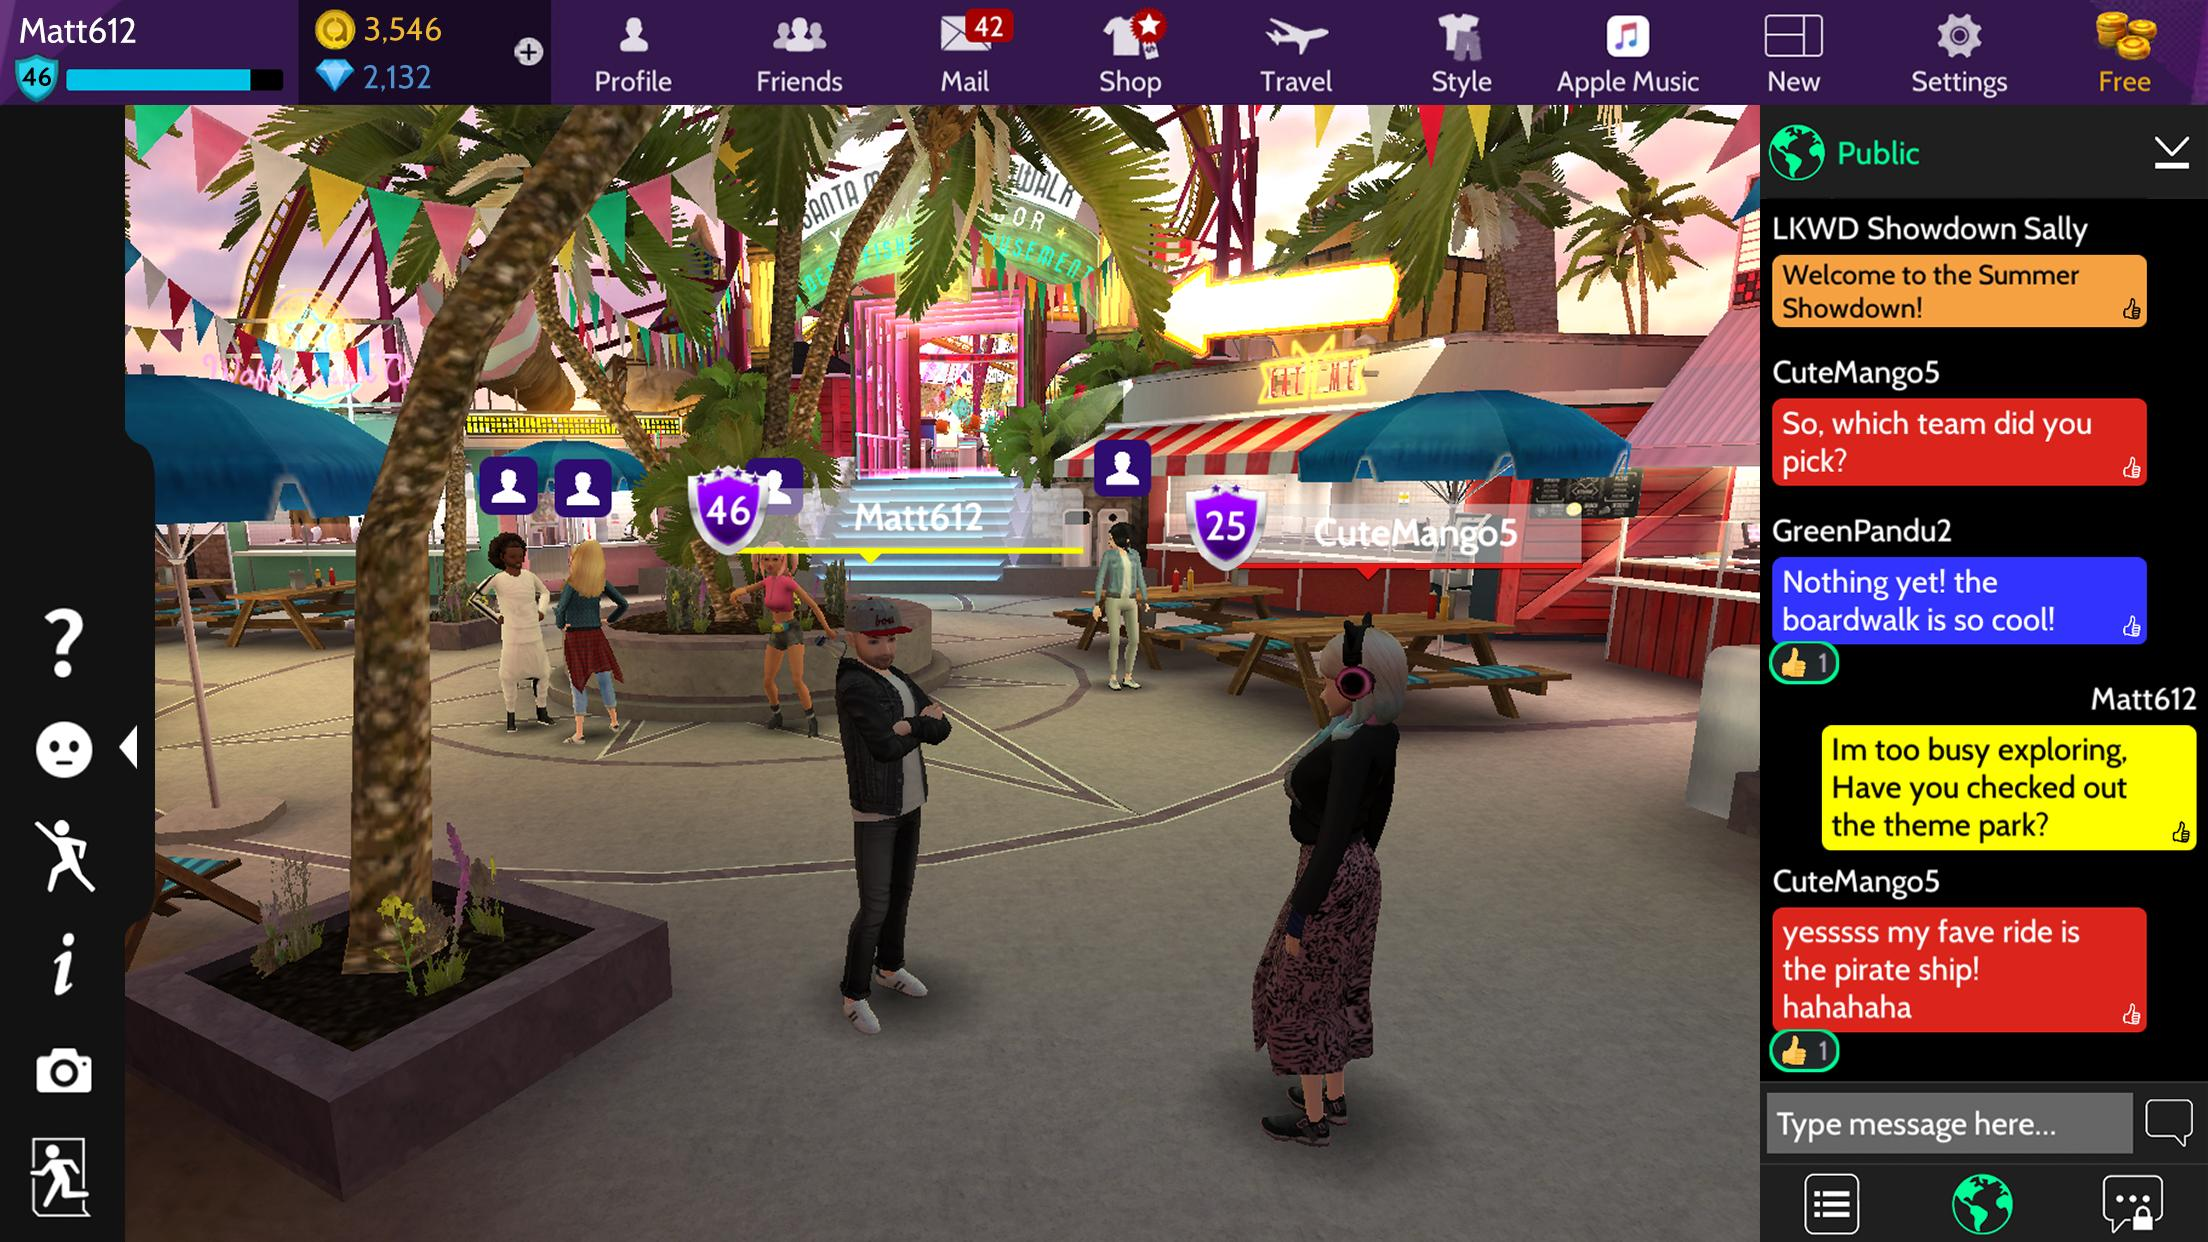 Avakin Life for Android - APK Download